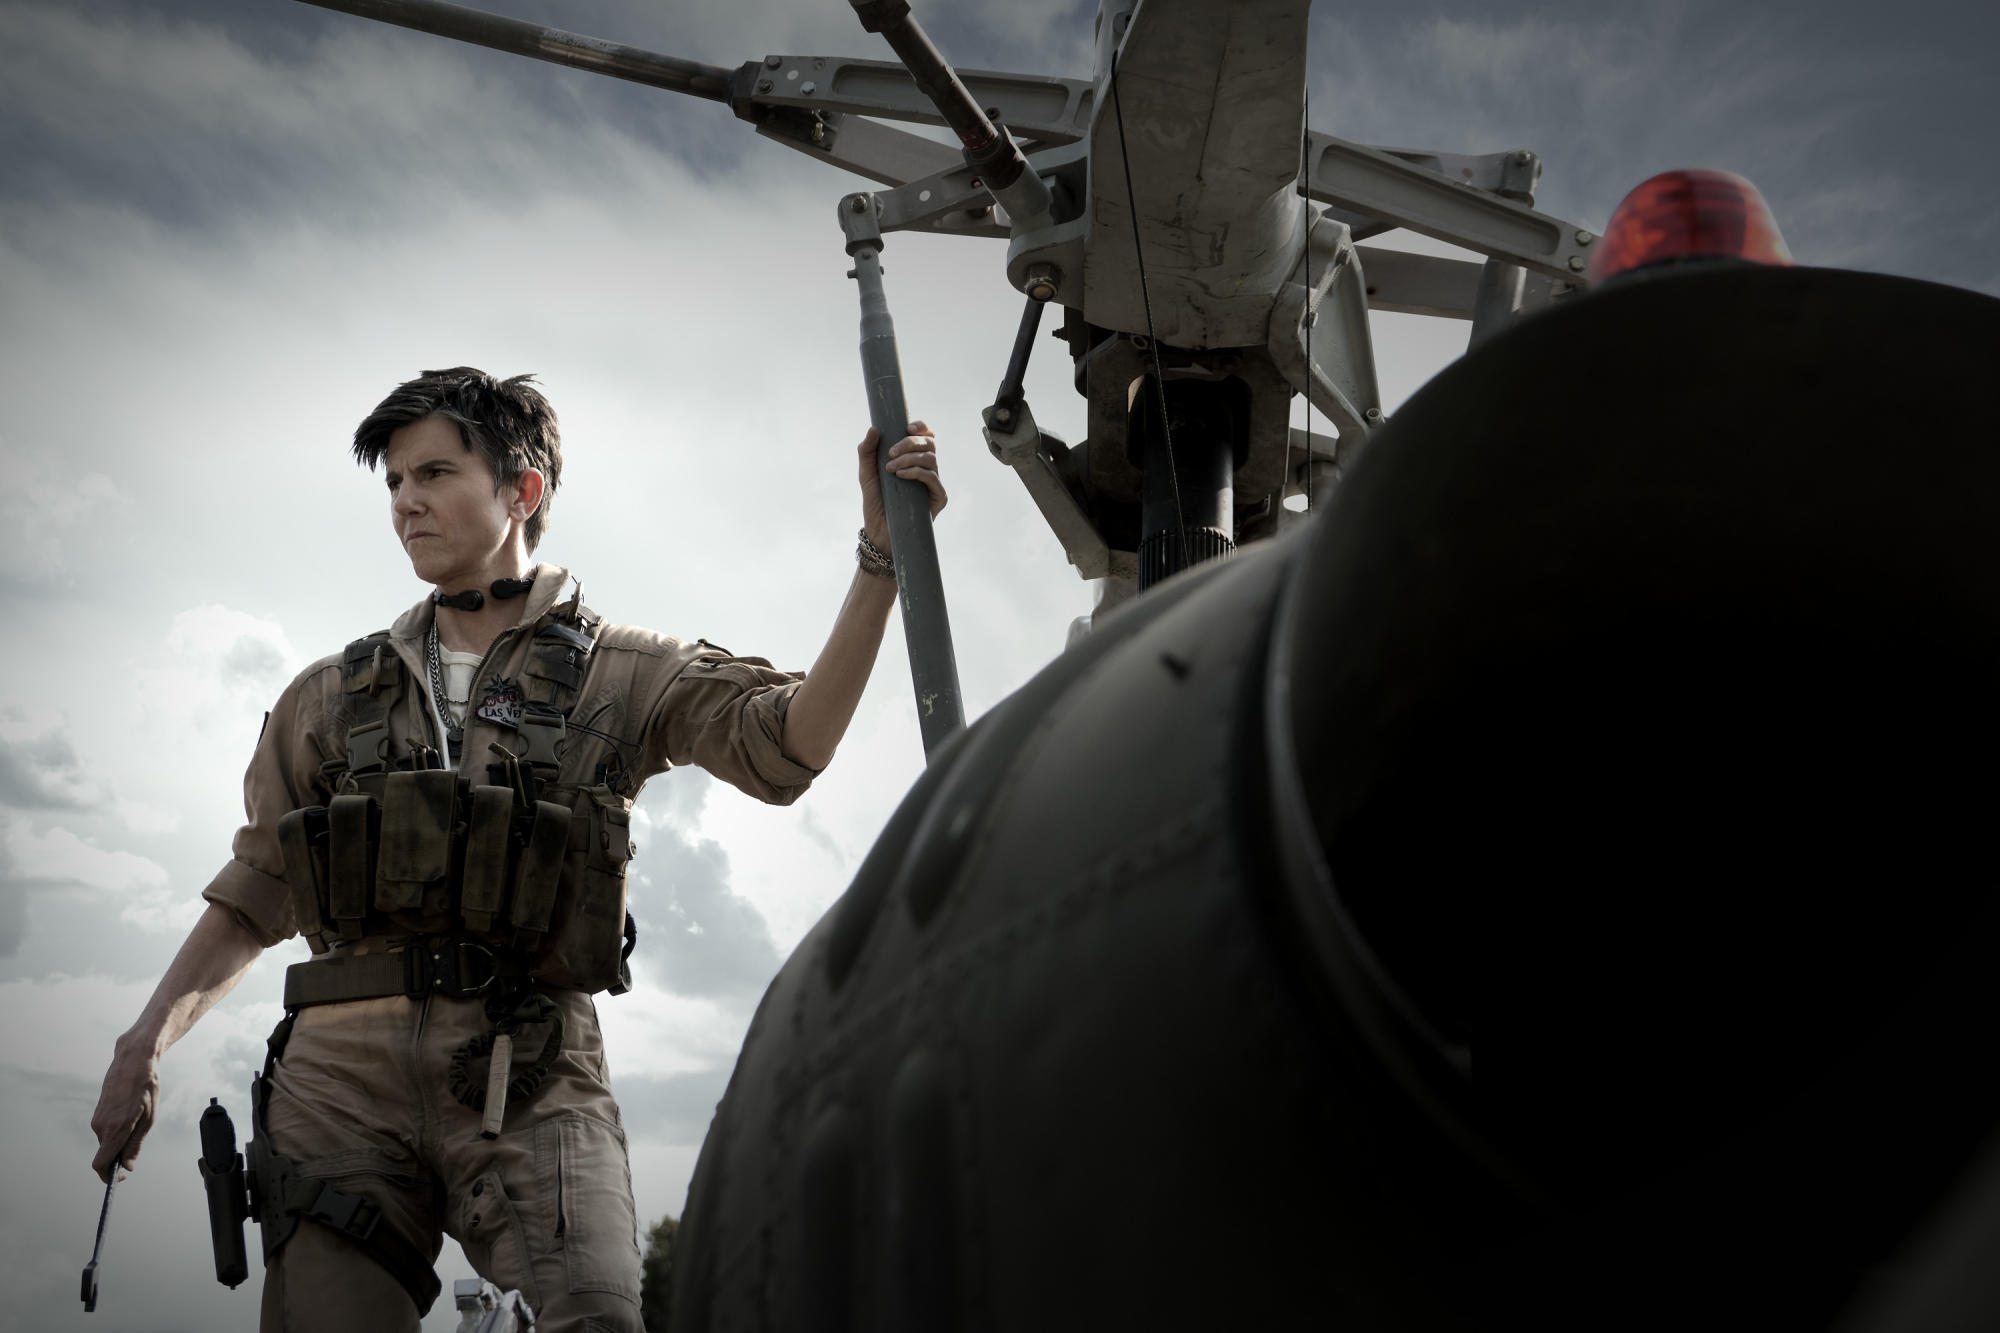 Tig Notaro on replacing Chris D'Elia in 'Army of the Dead': 'There should be consequences for bad behavior'